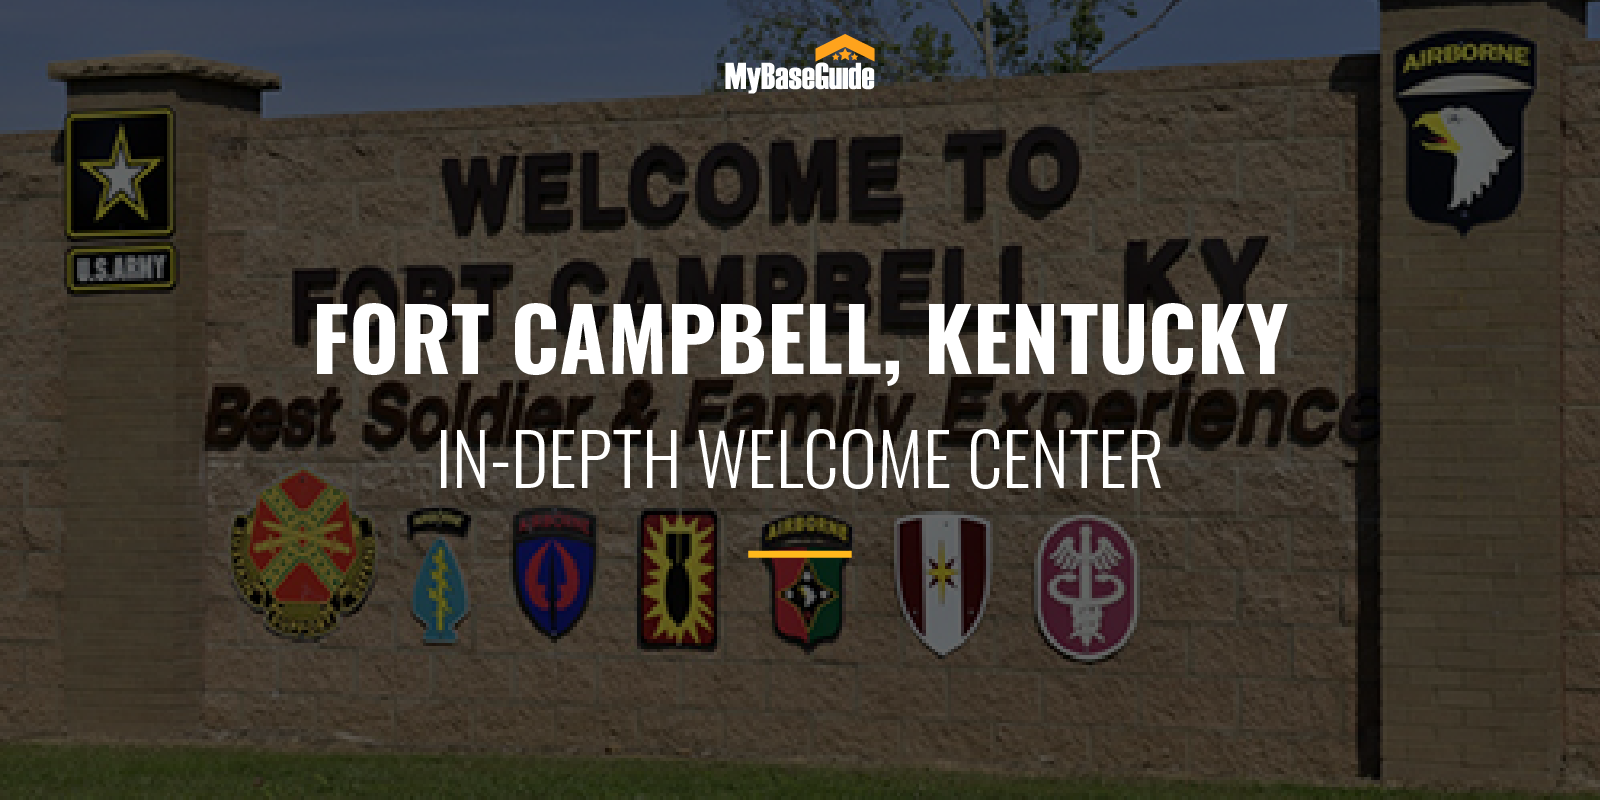 Fort Campbell In-Depth Welcome Center